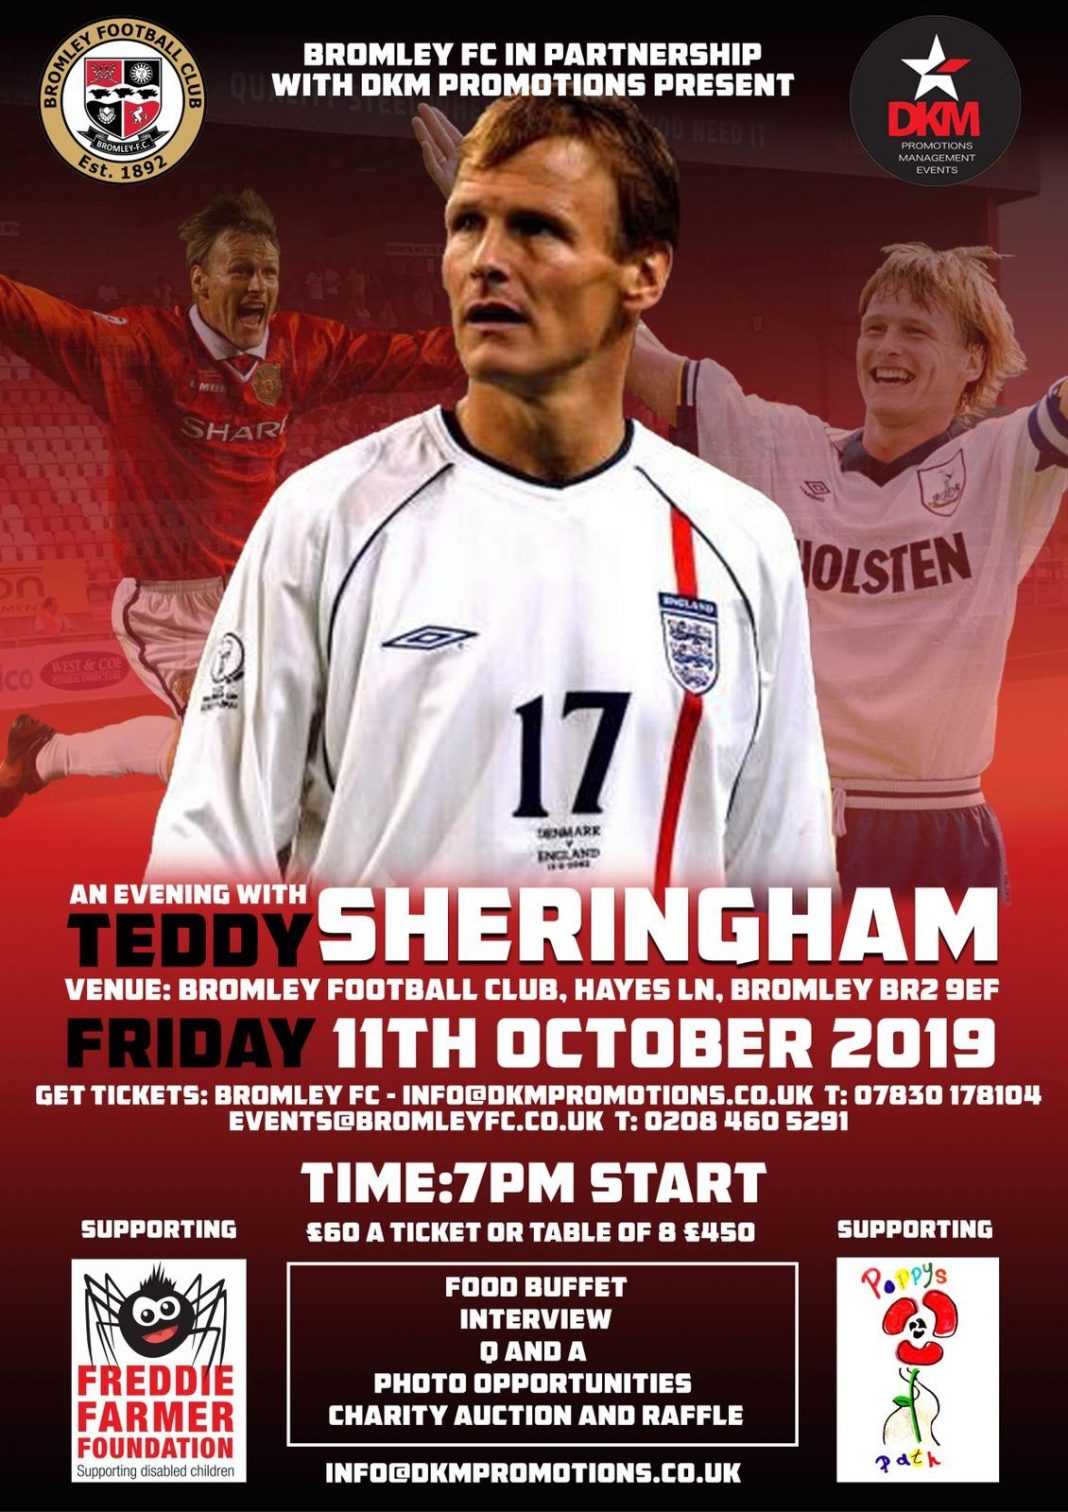 An evening with Teddy Sheringham at Bromley FC